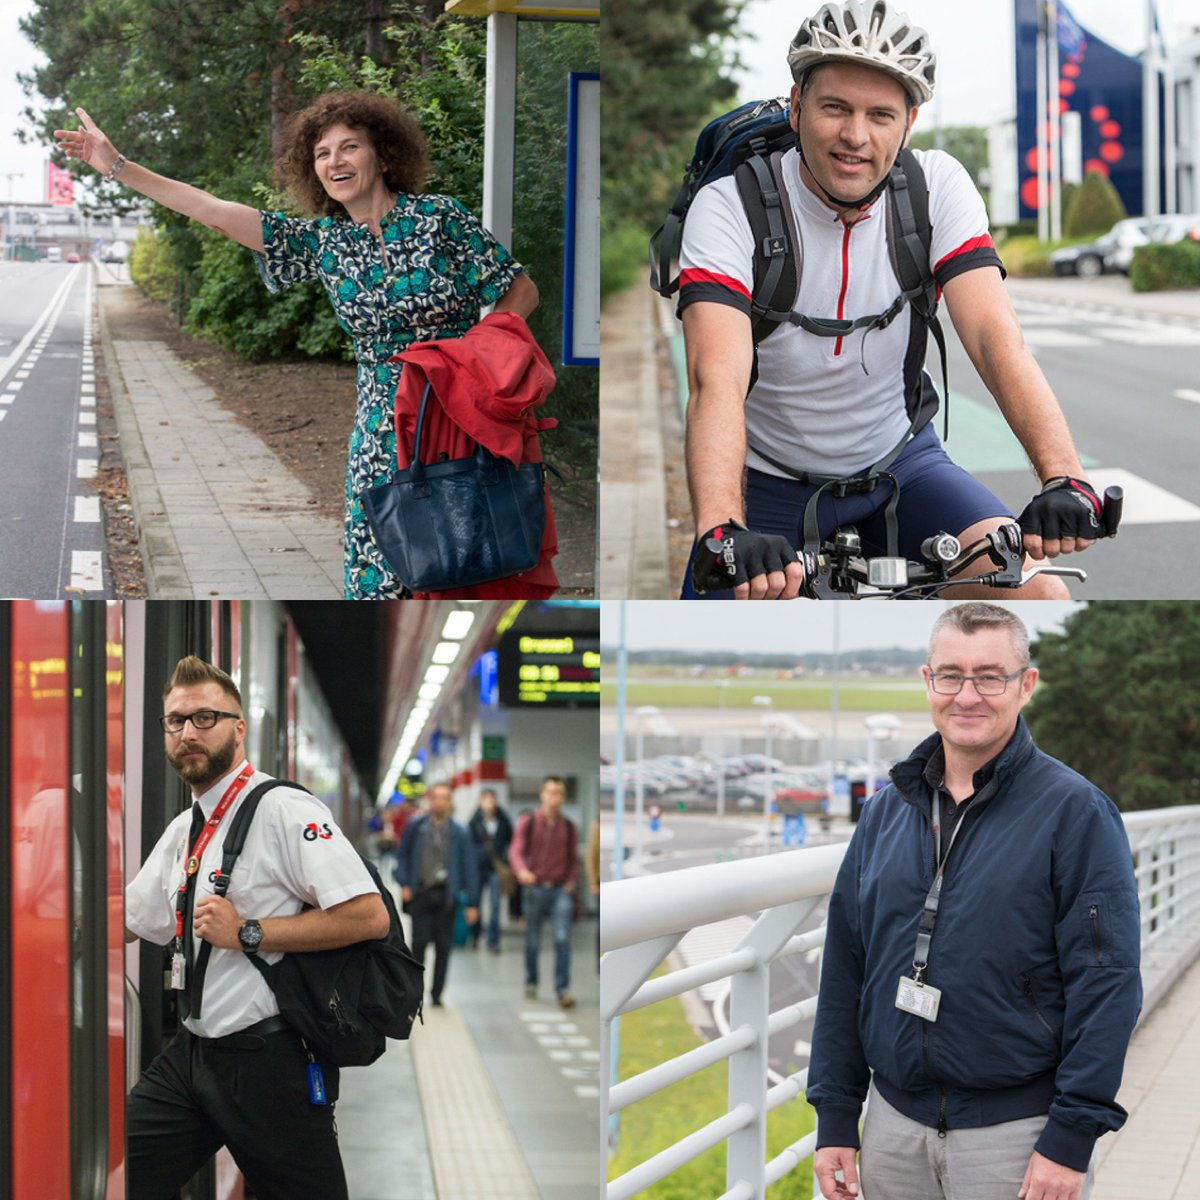 Staff of brusselsairport save twice the circumference of the planet during carfreeweek.